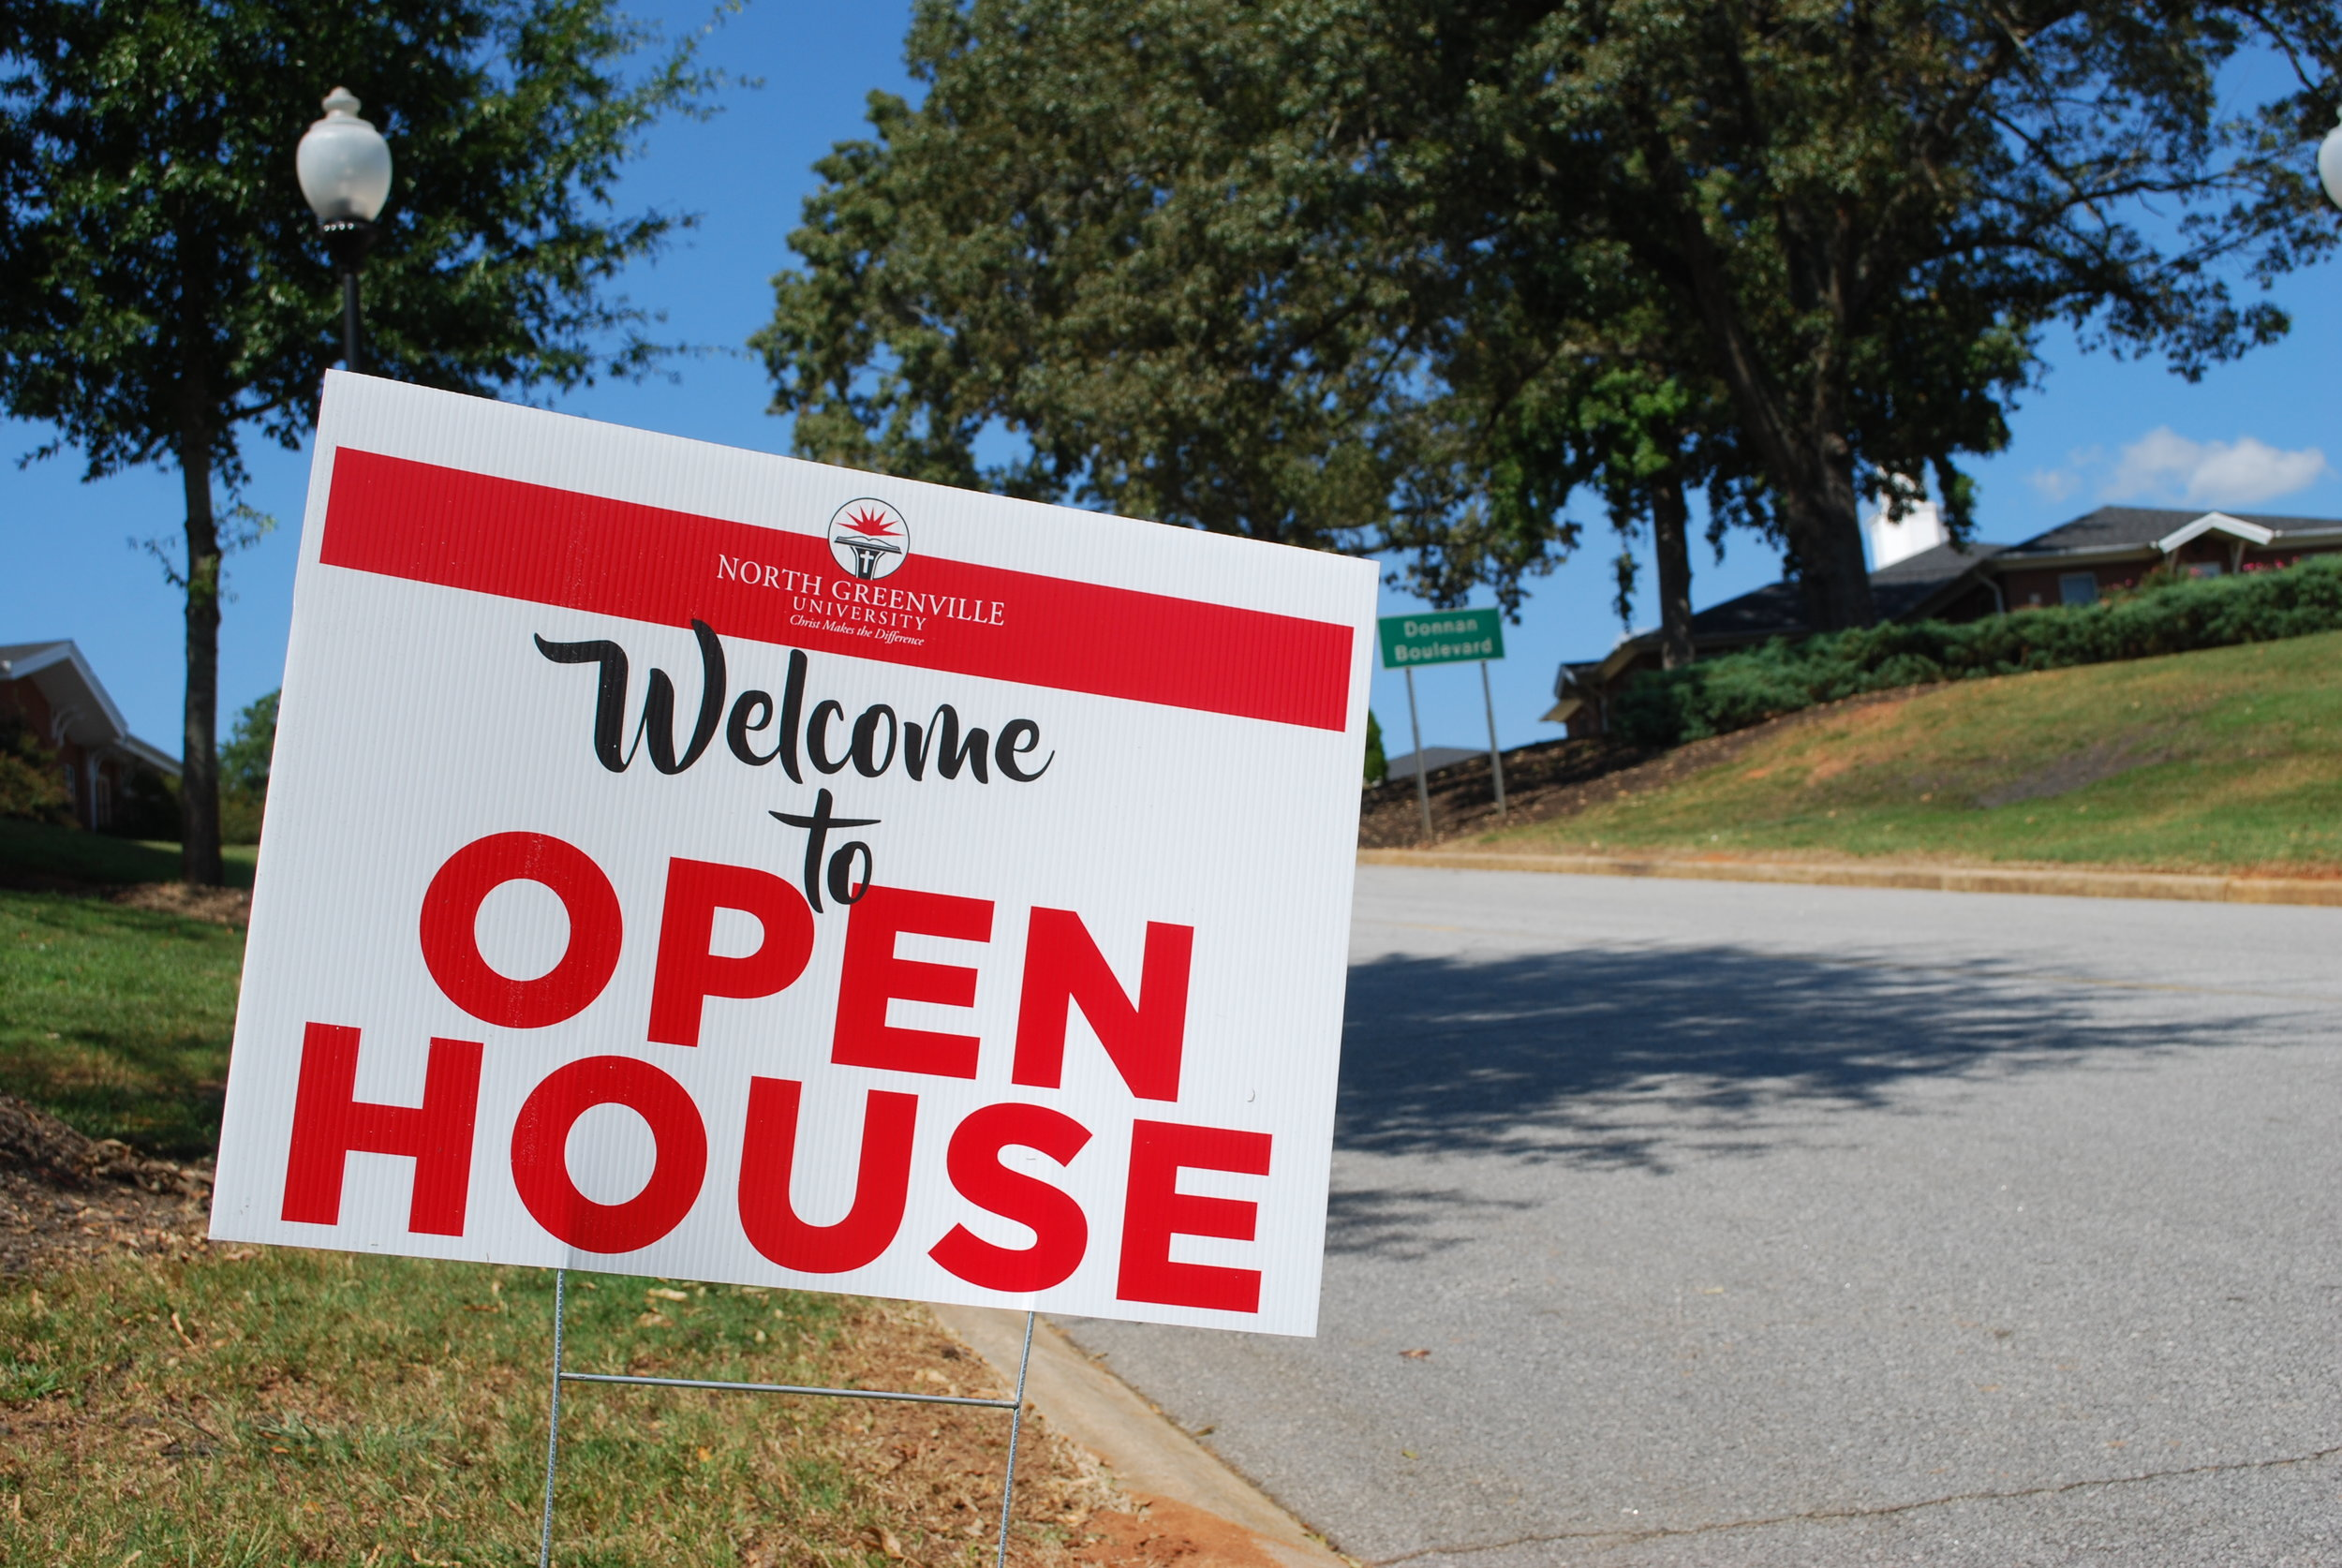 North Greenville University welcomed prospective students to its open house on Saturday, September 23, 2017.